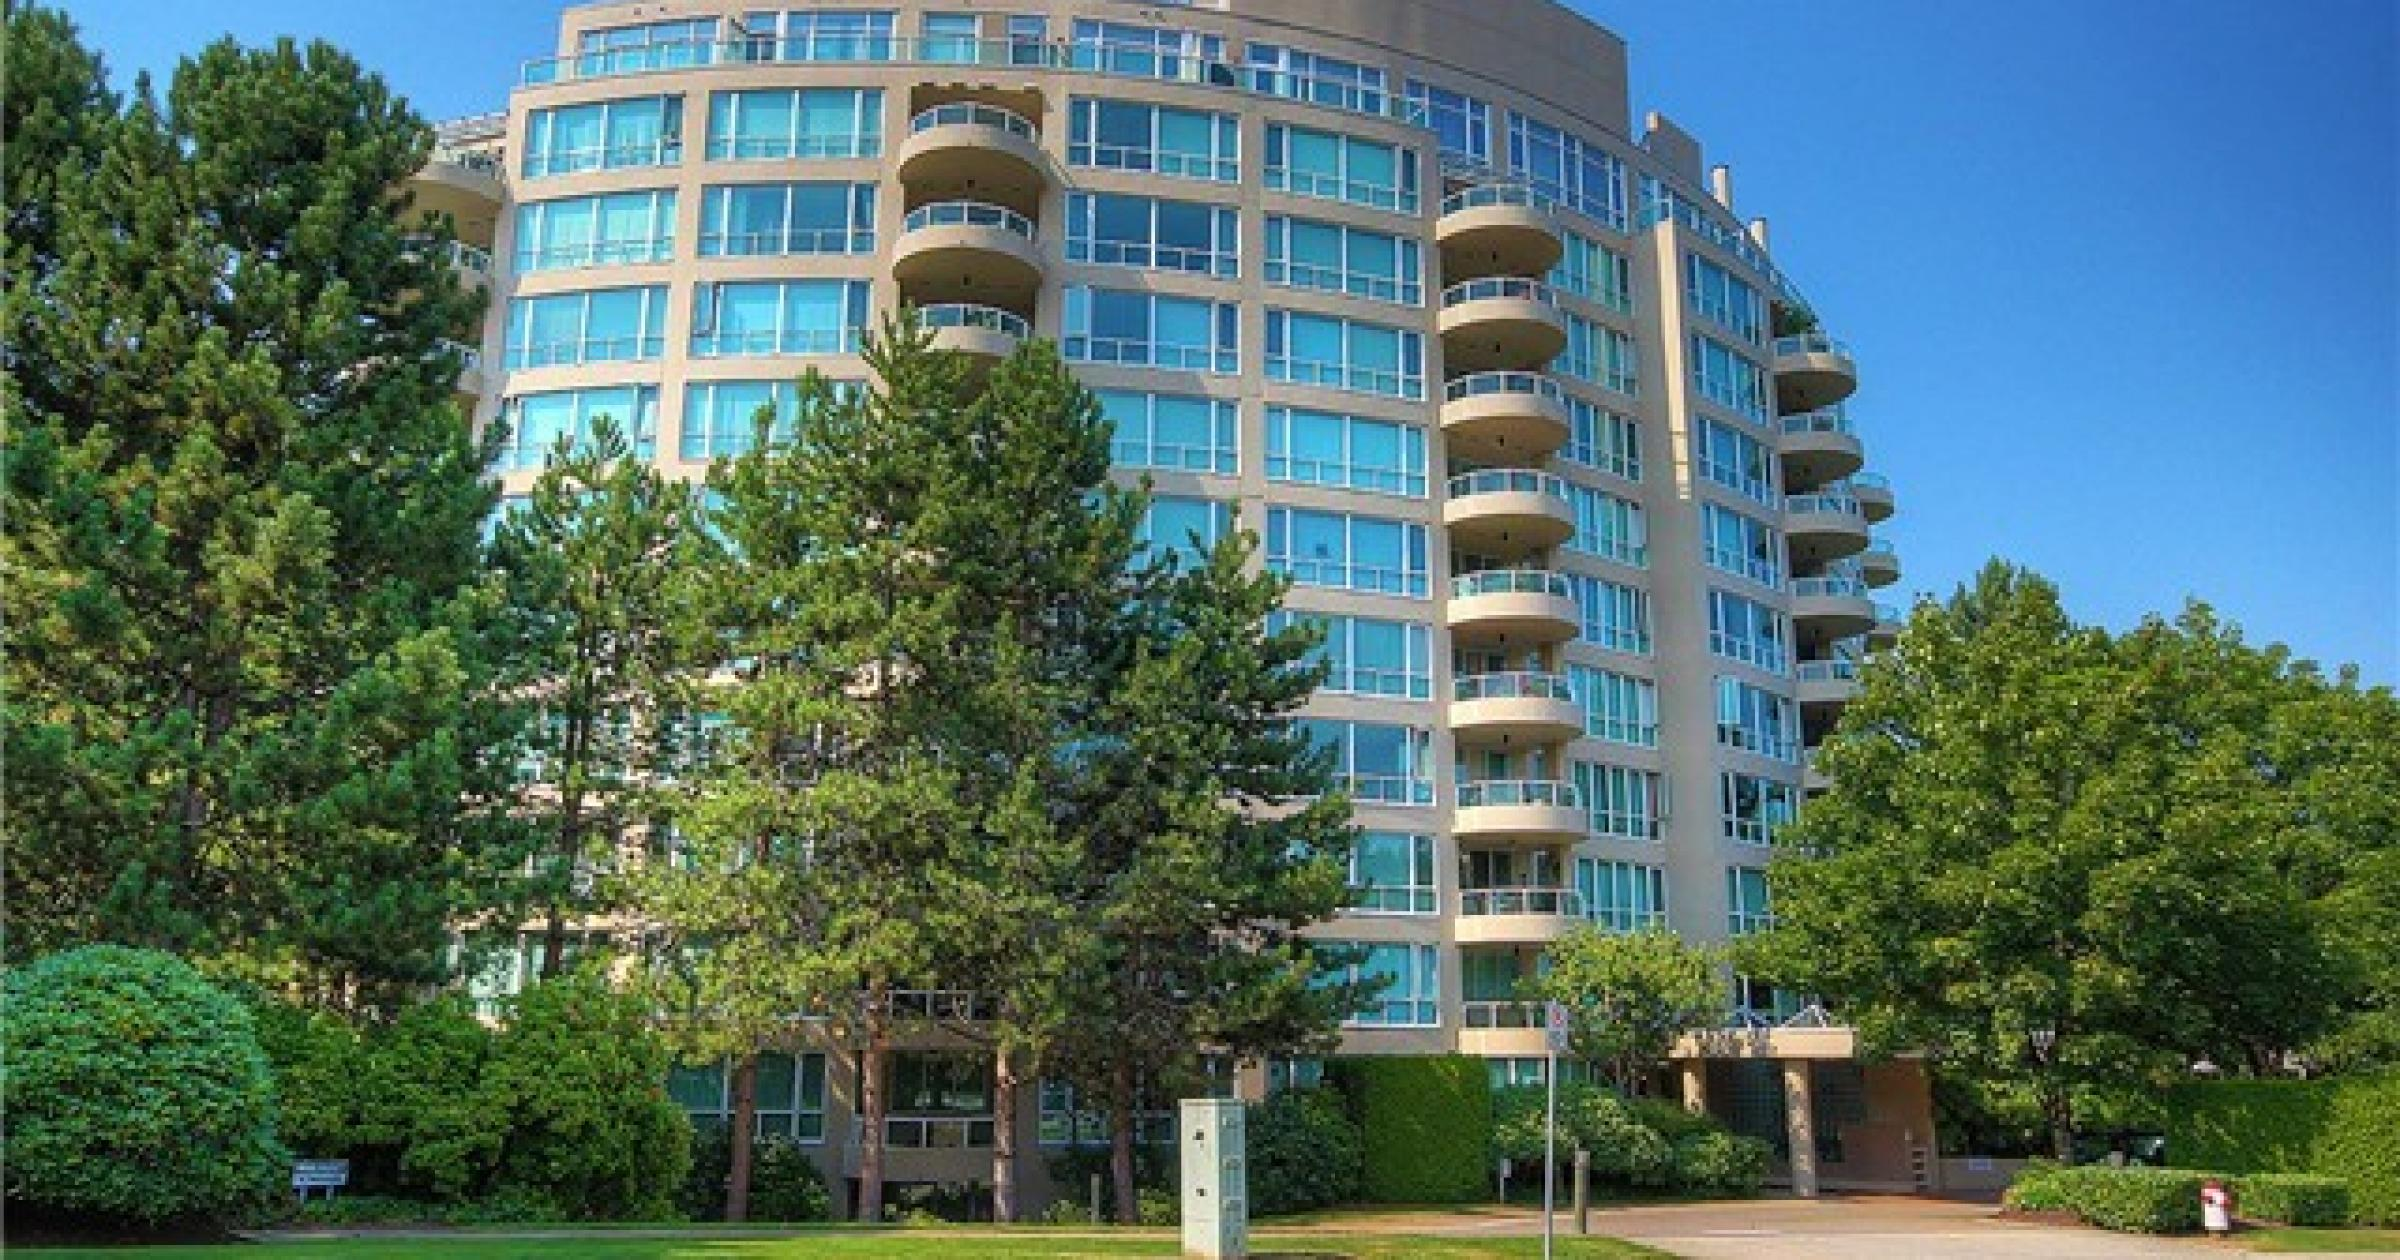 502-995 Roche Point Drive: Roche Point Tower 2 bedroom 1,470 sq.ft., Condo for sale, North Vancouver, David Valente Royal LePage Sussex